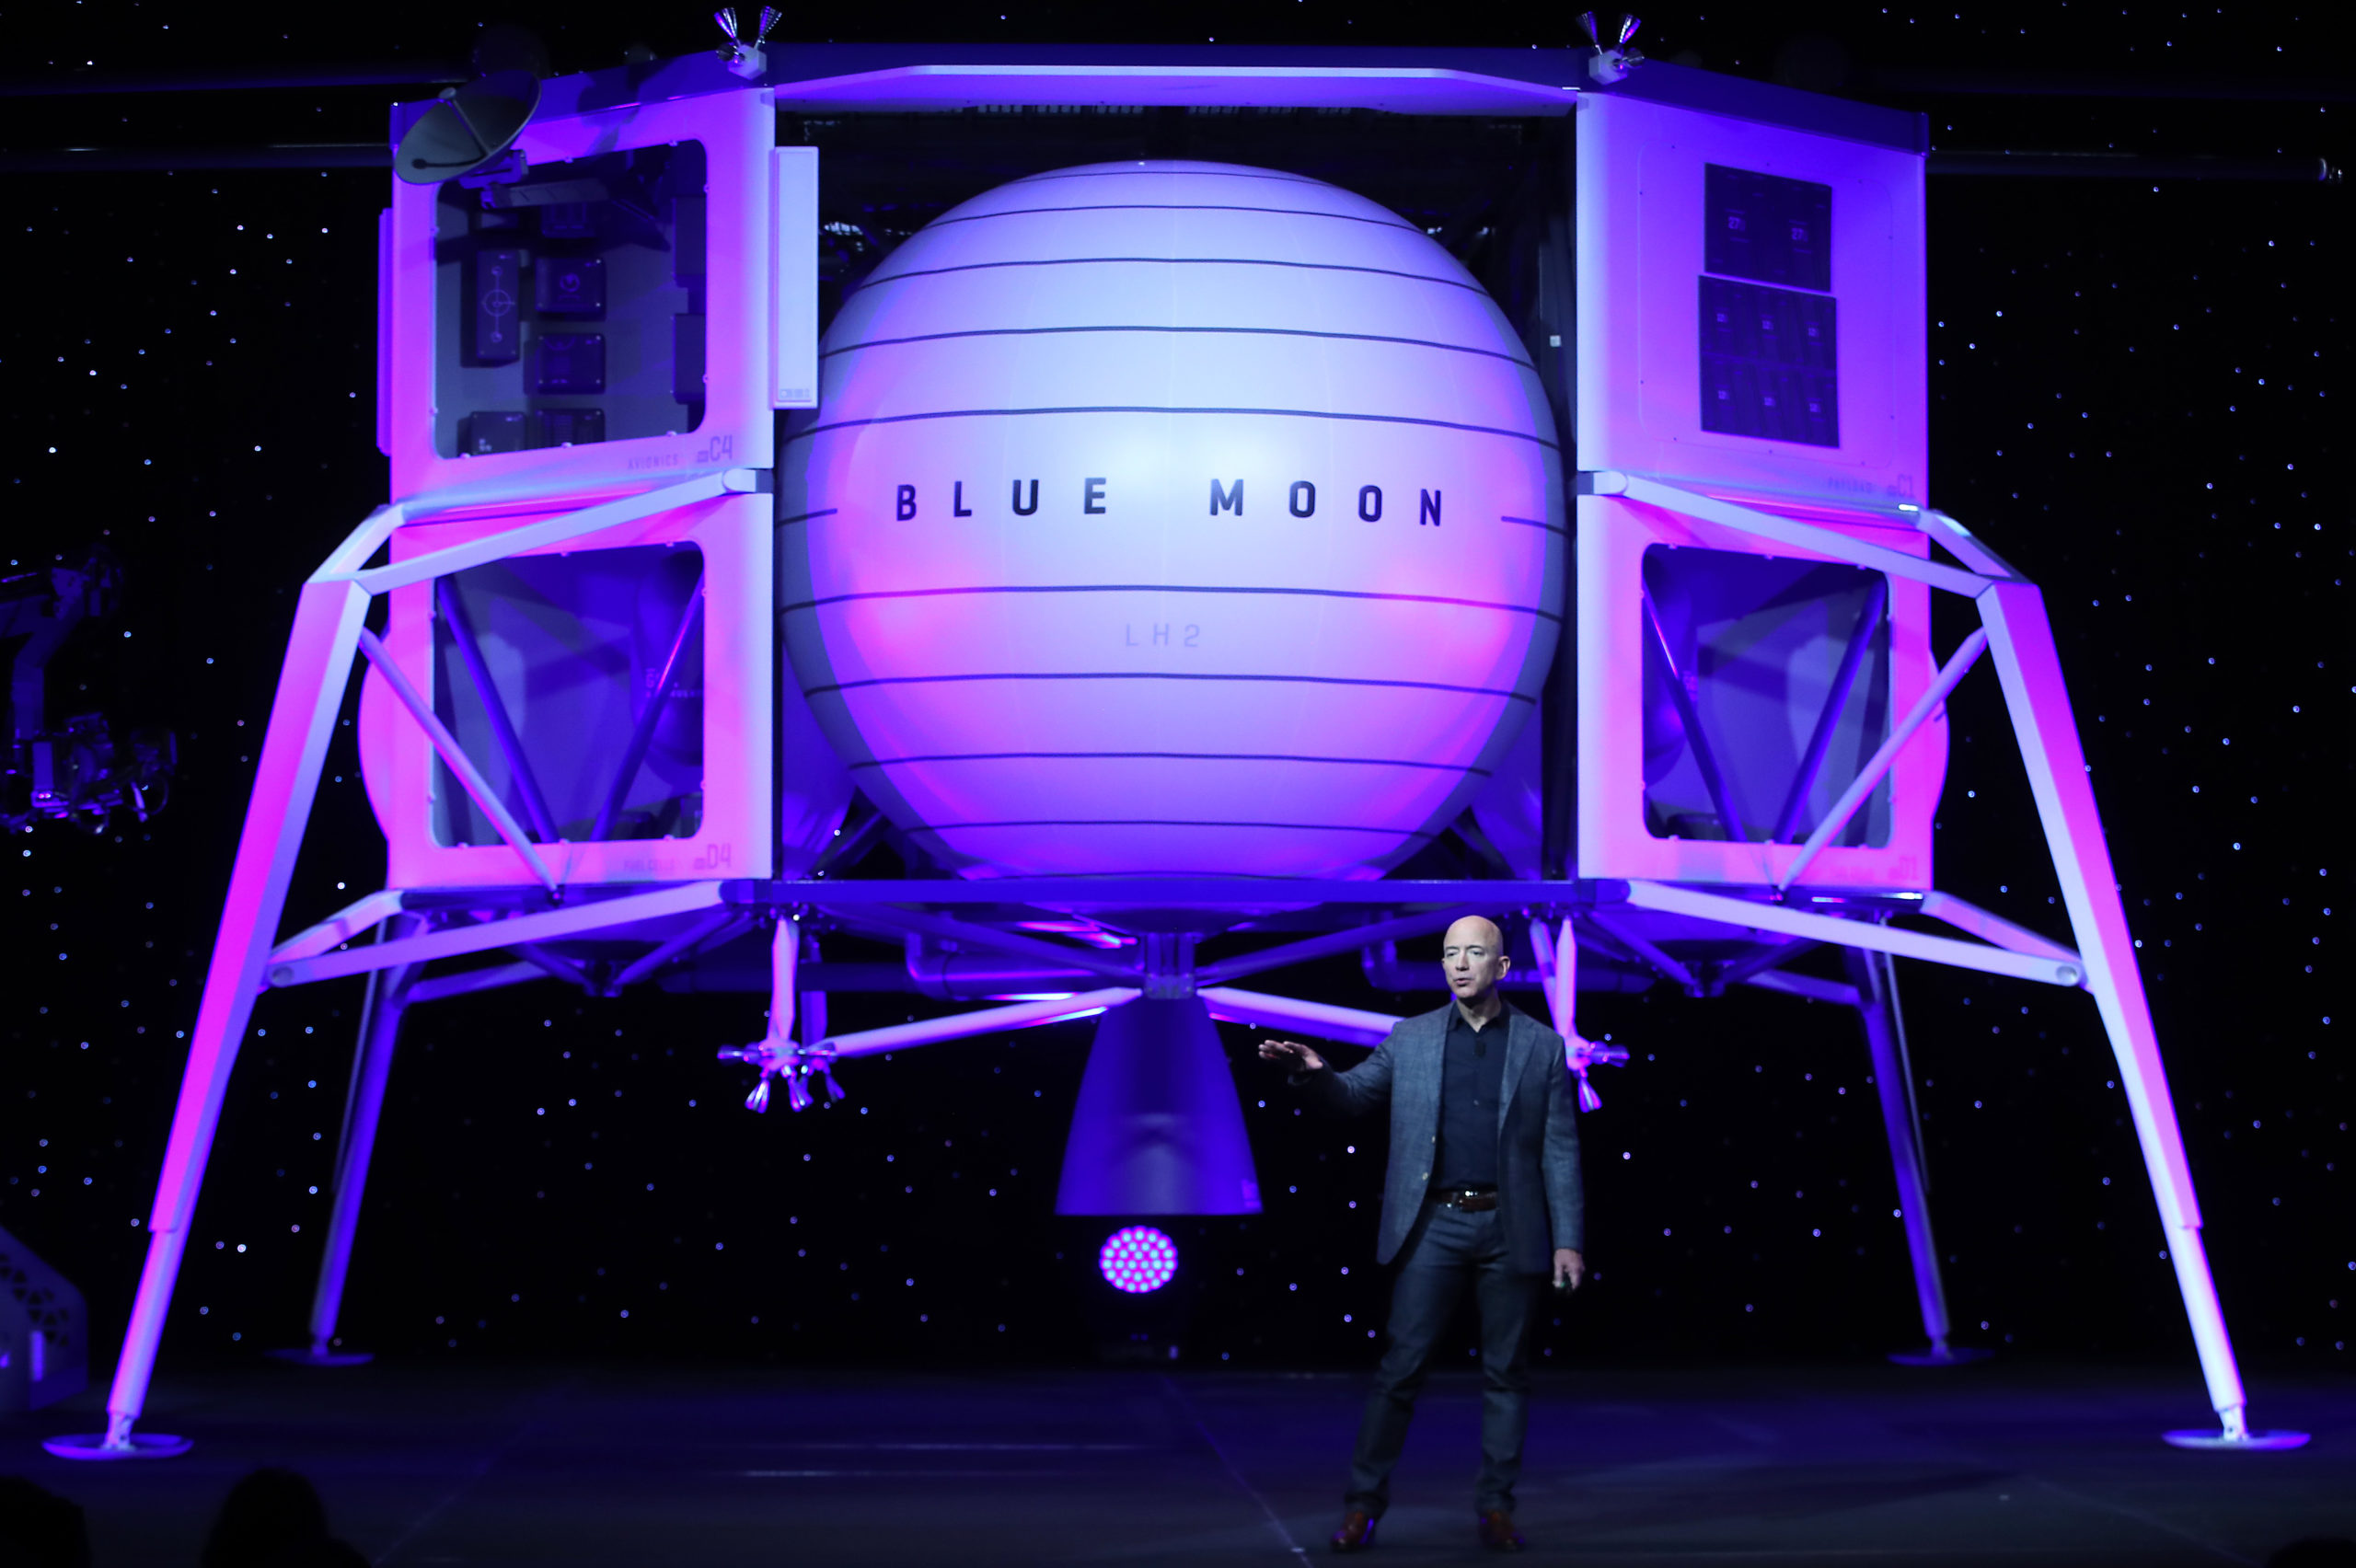 Jeff Bezos, owner of Blue Origin, introduces a new lunar landing module called Blue Moon during an event at the Washington Convention Center, May 9, 2019 in Washington, DC. (Photo by Mark Wilson/Getty Images)